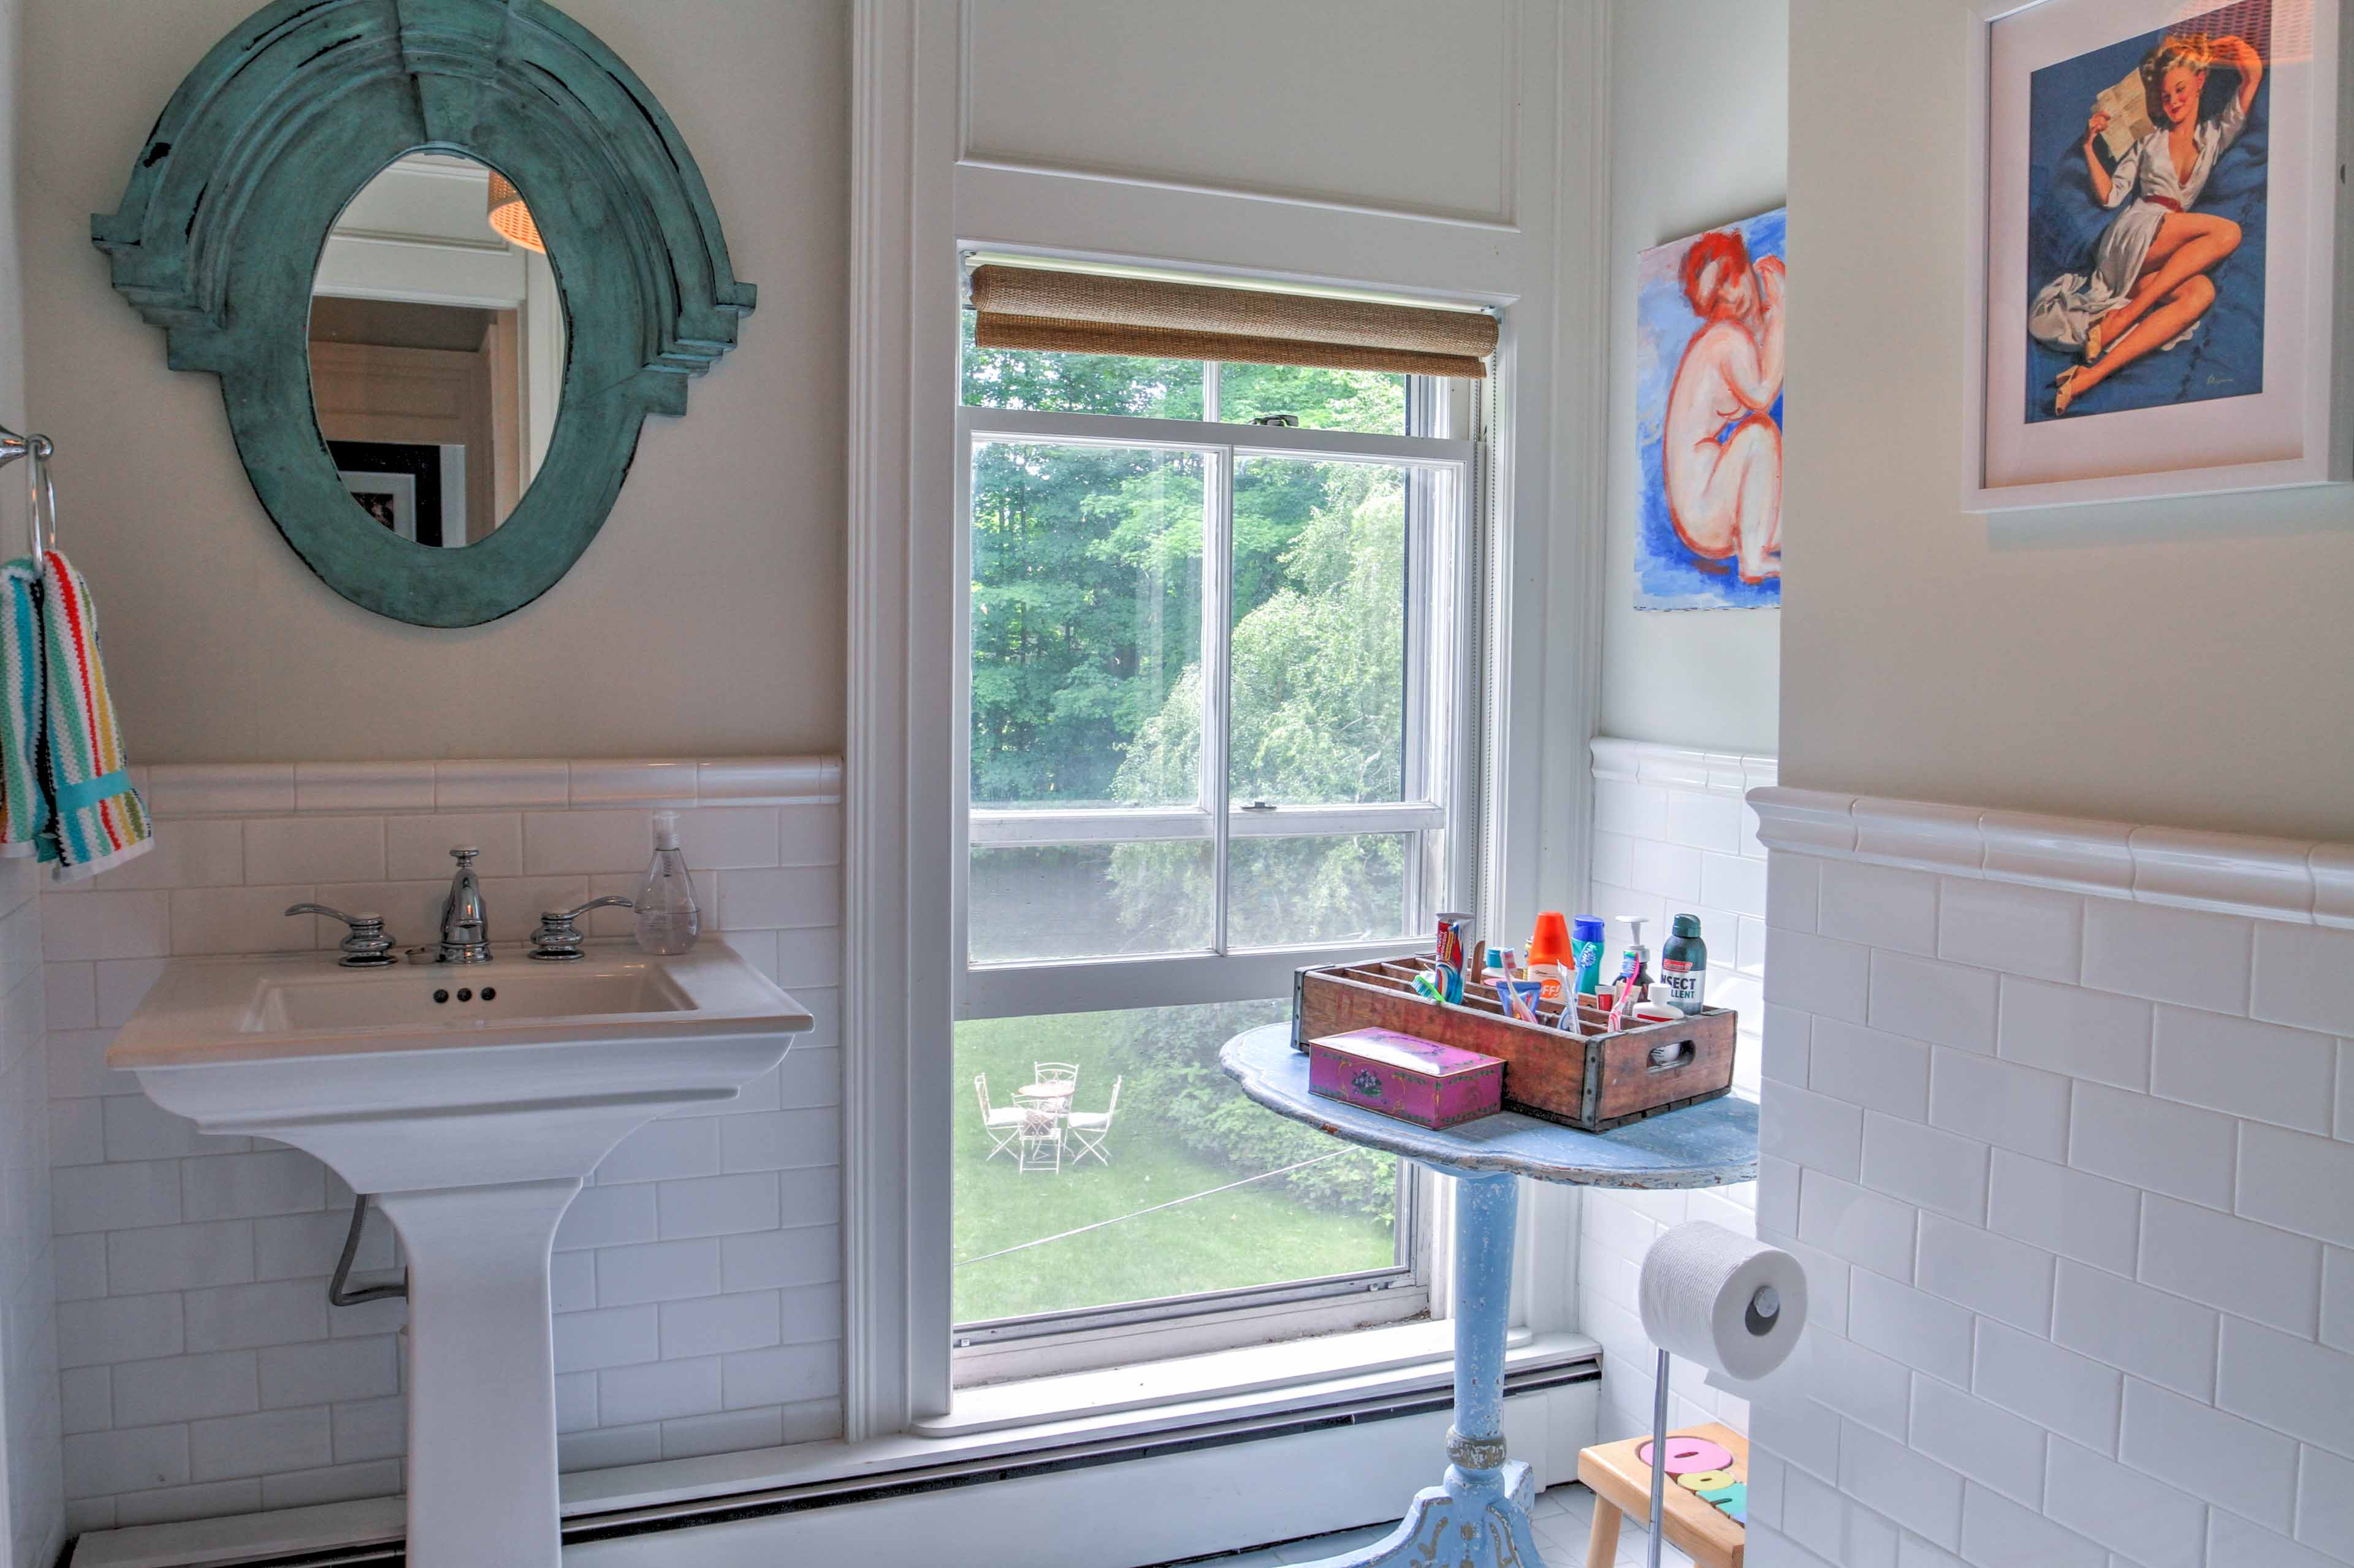 Natural sunlight streaming in offers great lighting for getting ready.